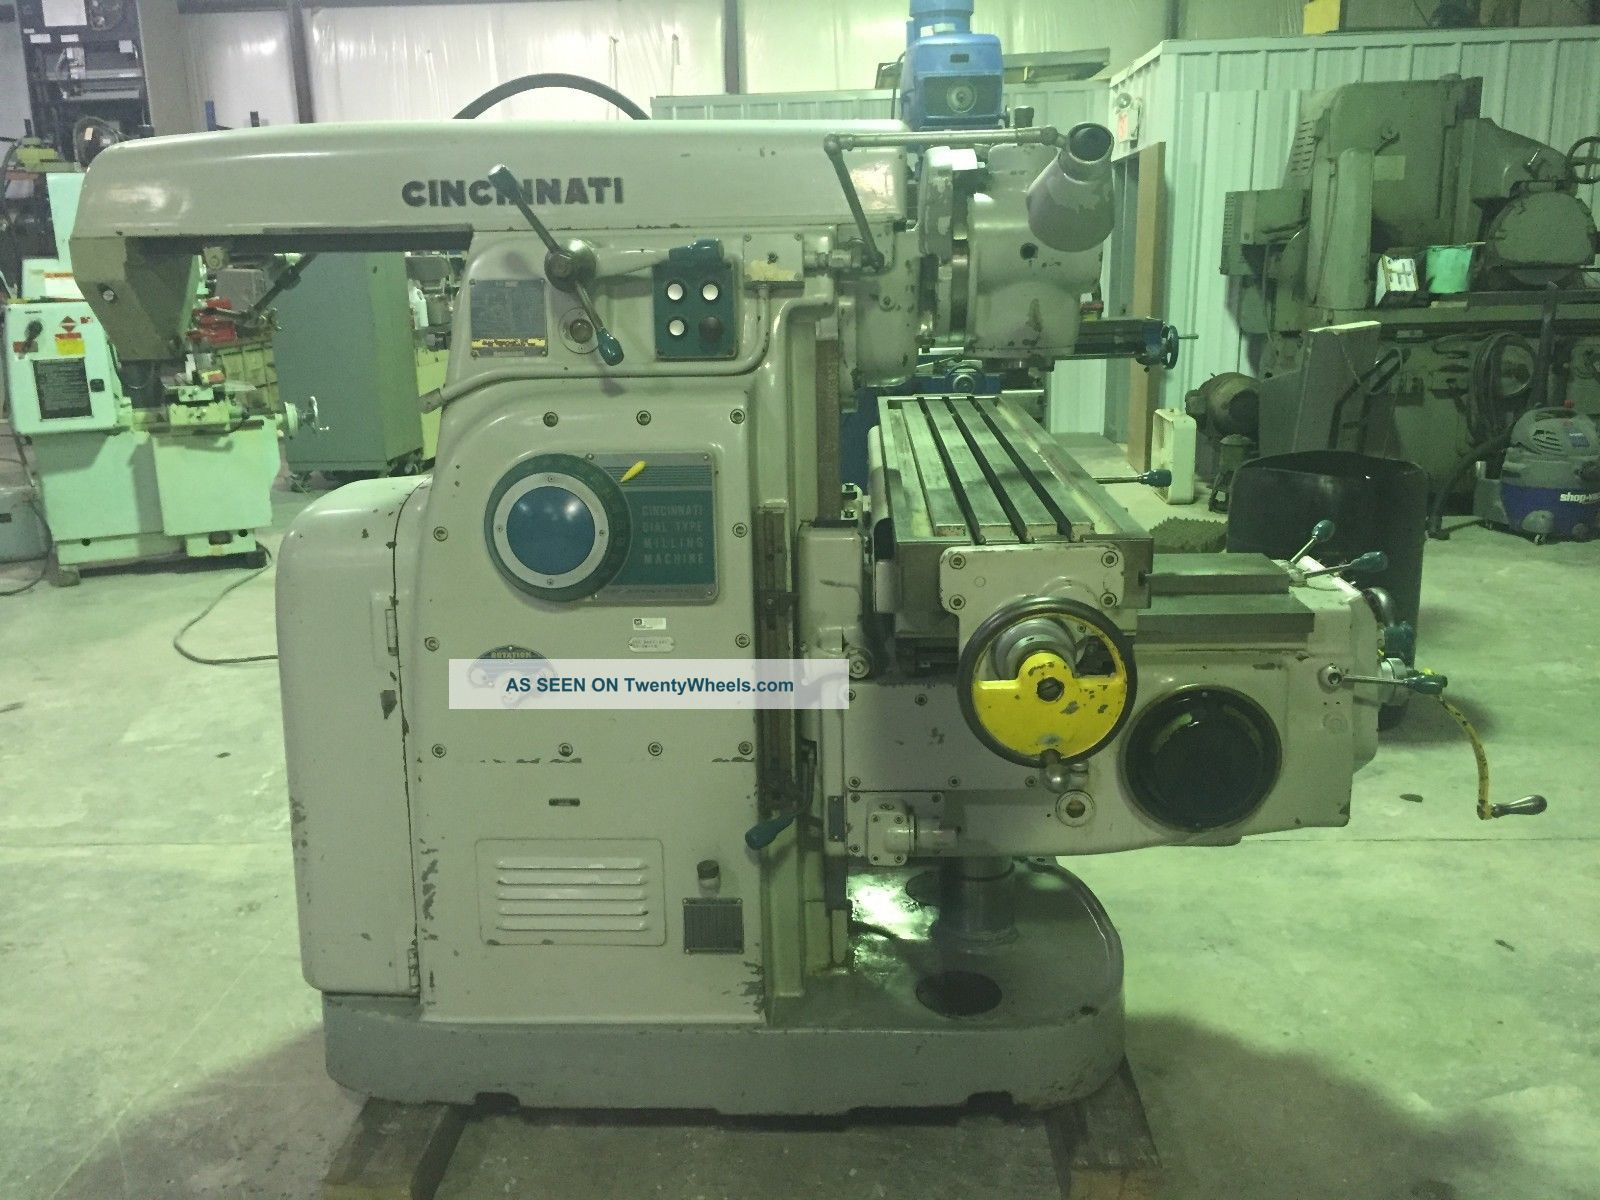 Cincinnati Horizontal/vertical Universal Mill,  50 Taper,  With Indexer & Tooling Milling Machines photo